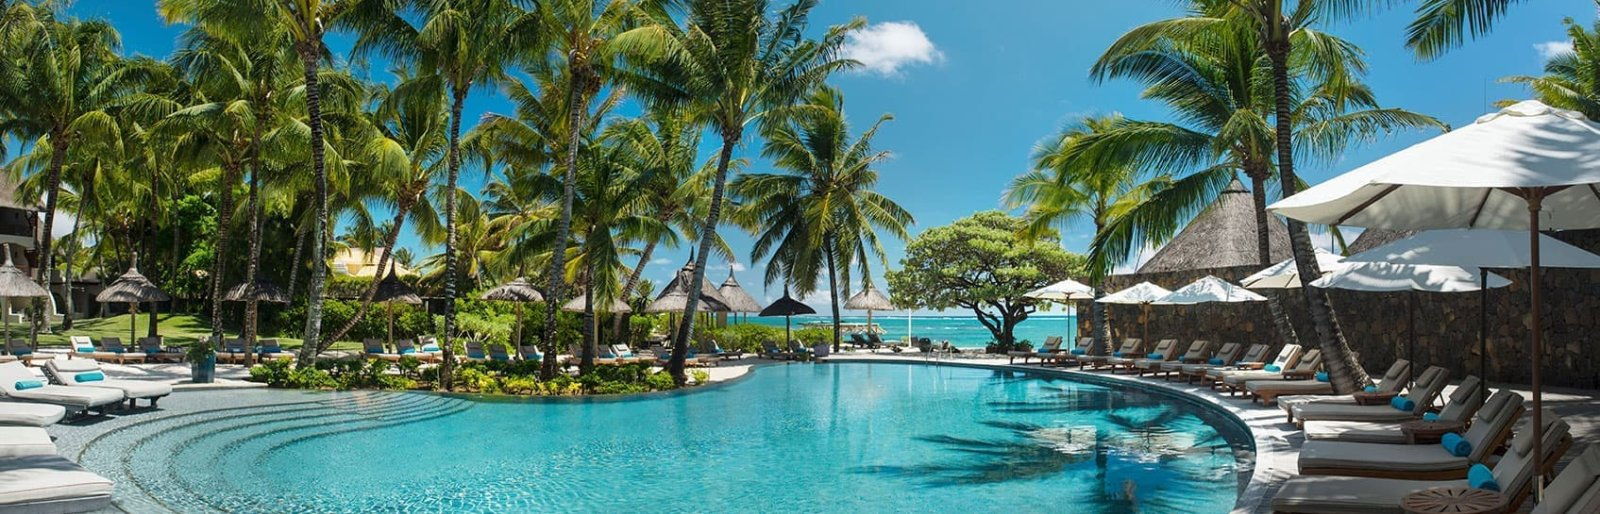 Package 1: Constance Belle Mare Plage 5* Hotel